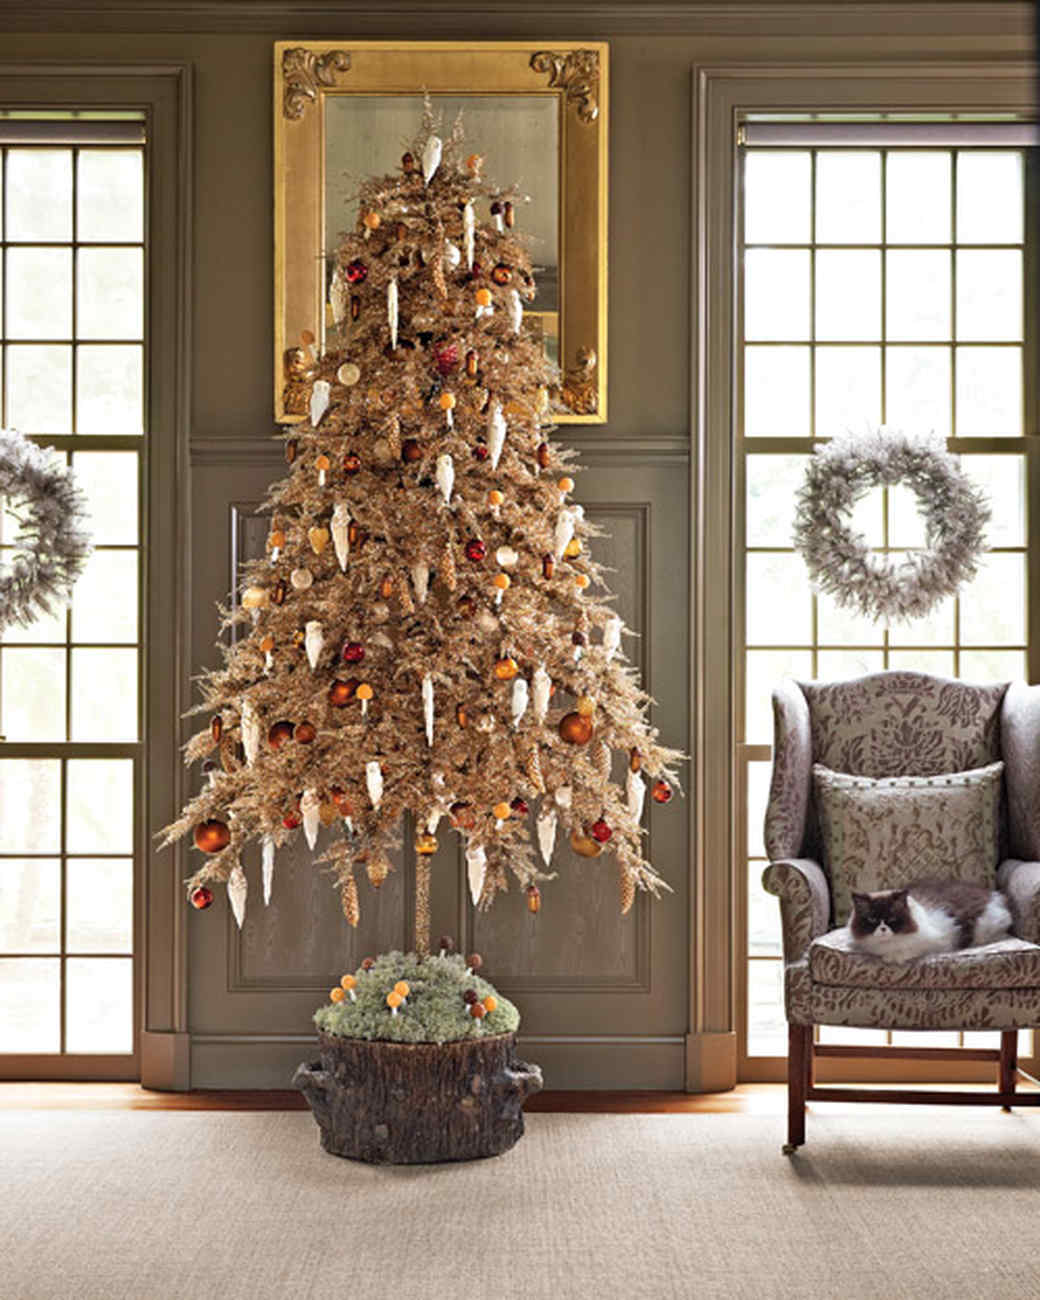 Martha's Holiday Decorating Ideas | Martha Stewart